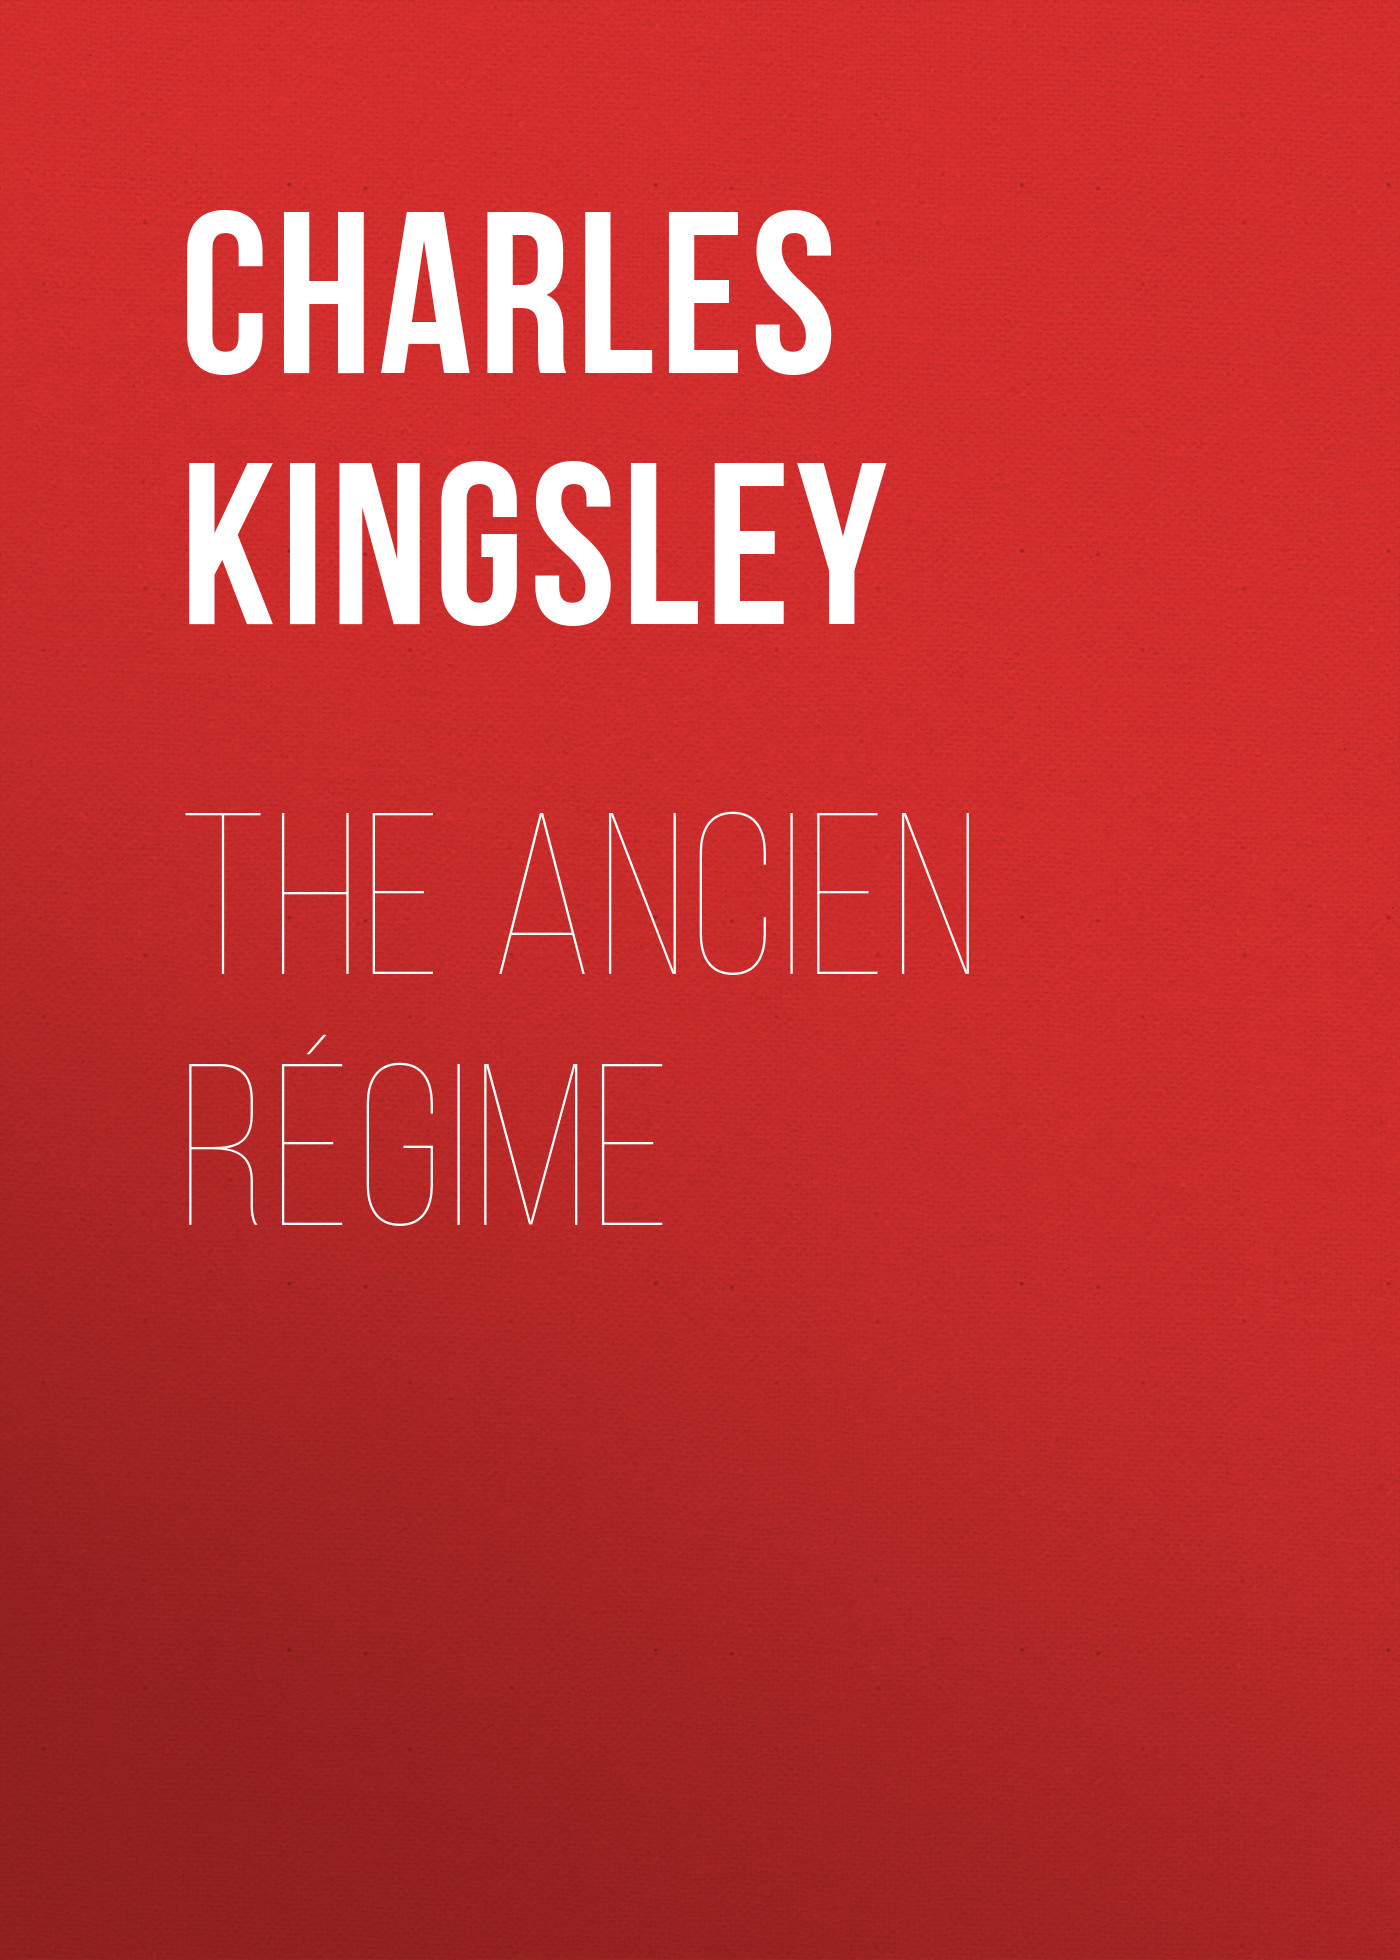 Charles Kingsley The Ancien Régime charles kingsley the roman and the teuton